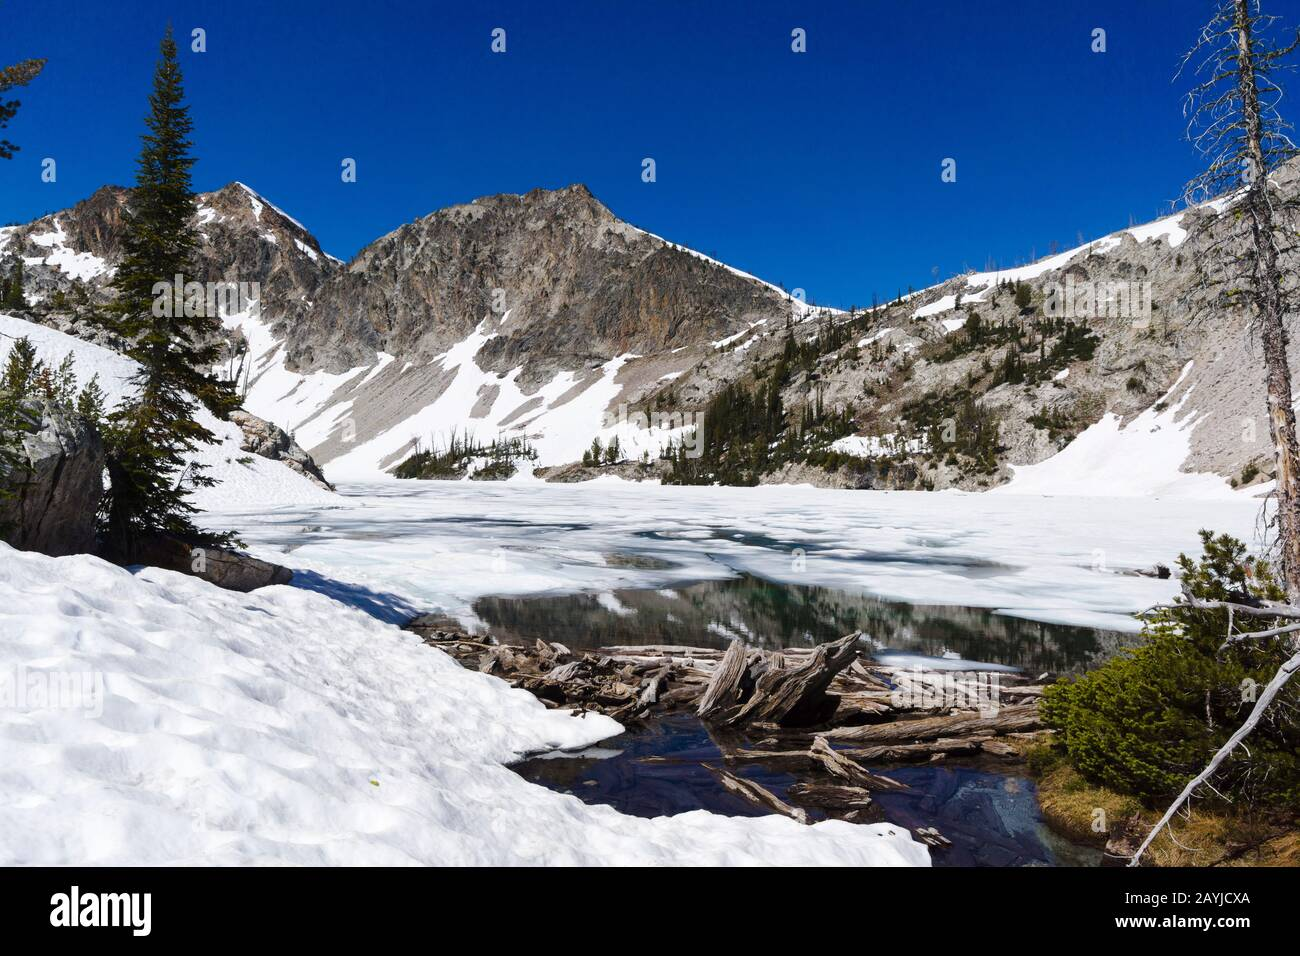 Sawtooth Lake, Sawtooth Wilderness, Idaho, États-Unis Banque D'Images